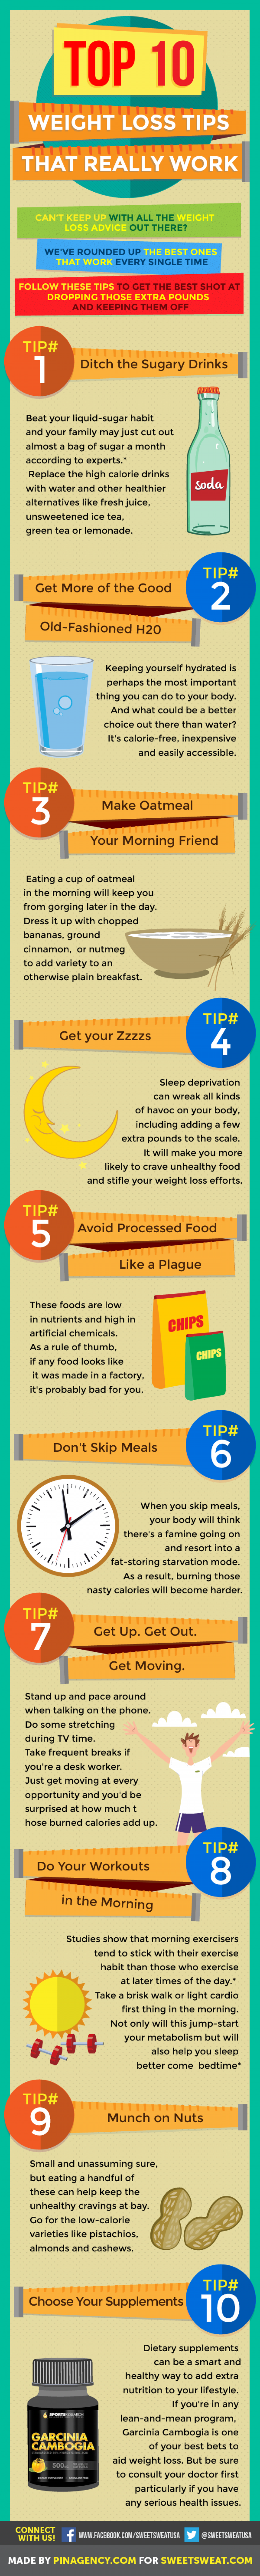 Top 10 Weight Loss Tips That Really Work  Infographic